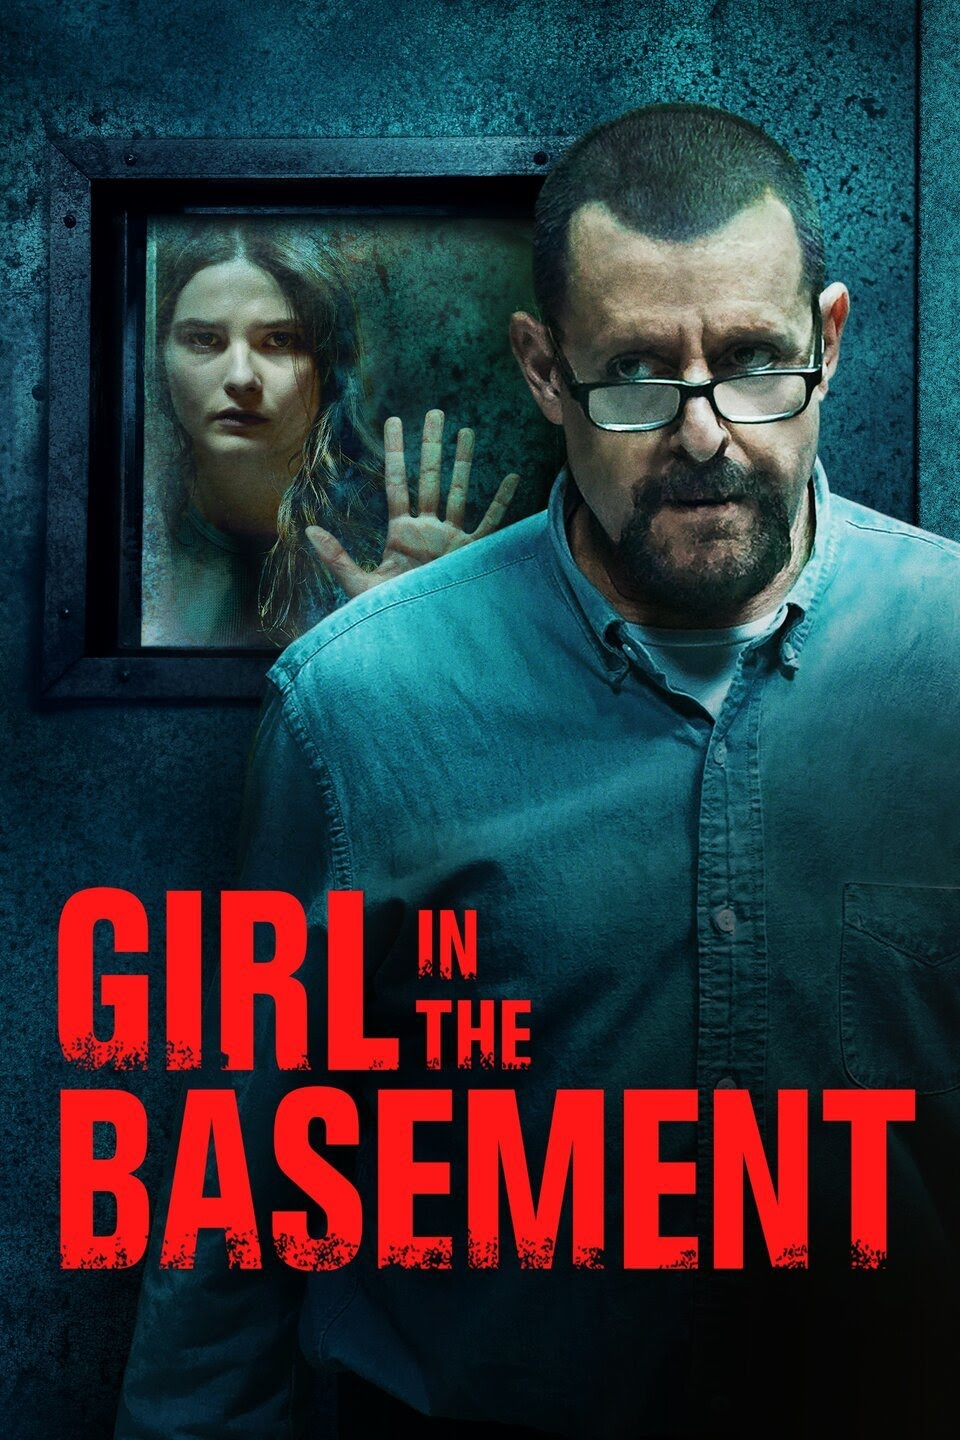 watch Girl in the Basement on soap2day